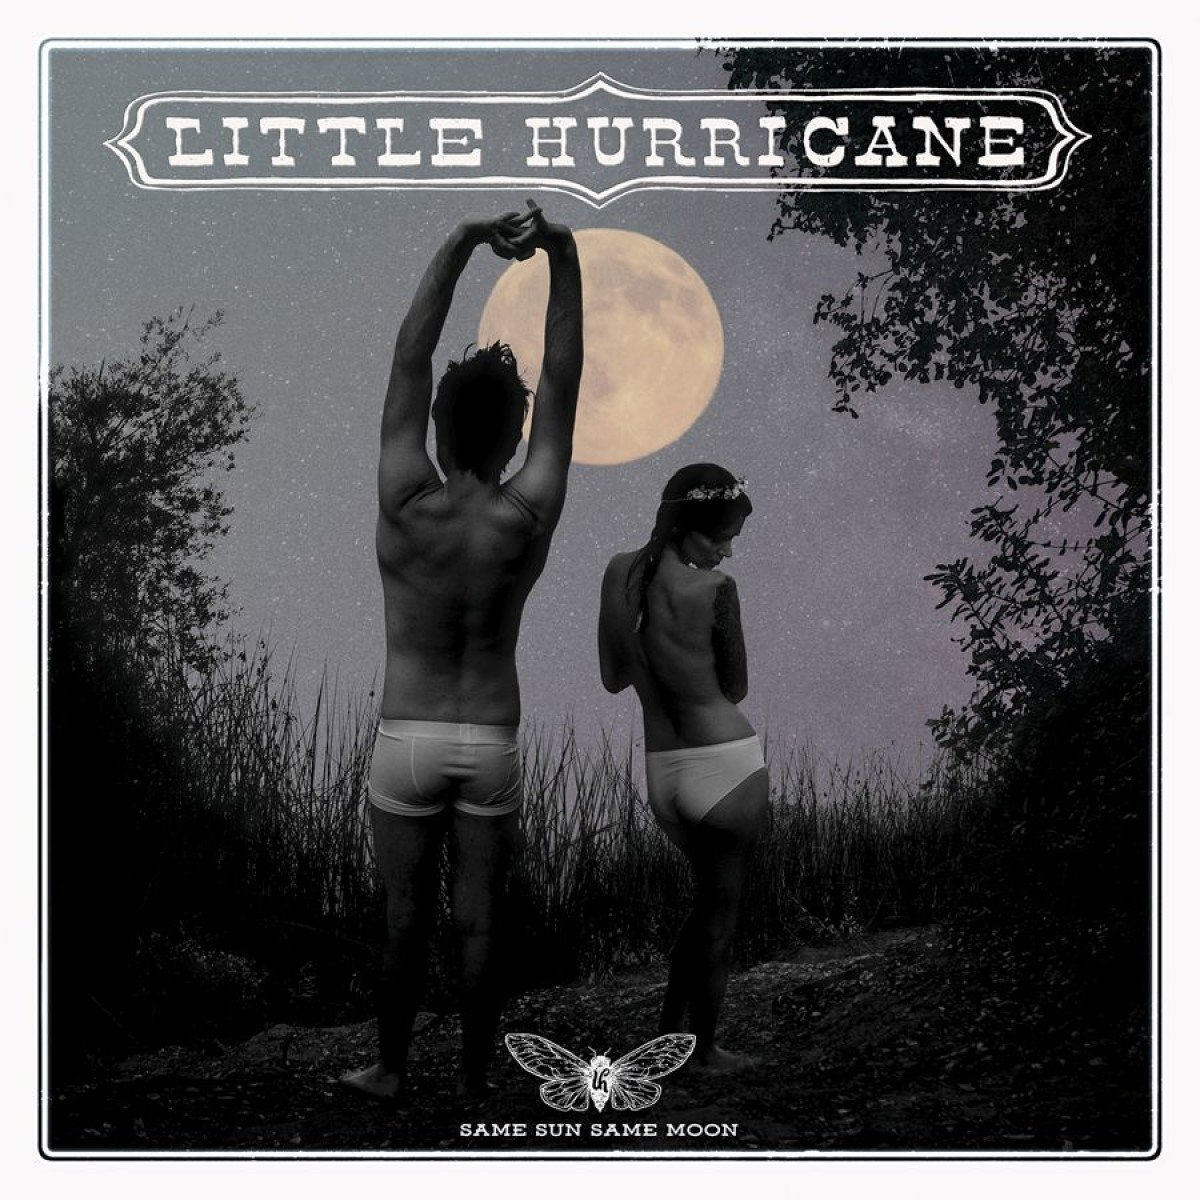 image of album cover for Little Hurricane Same Sun Same Moon